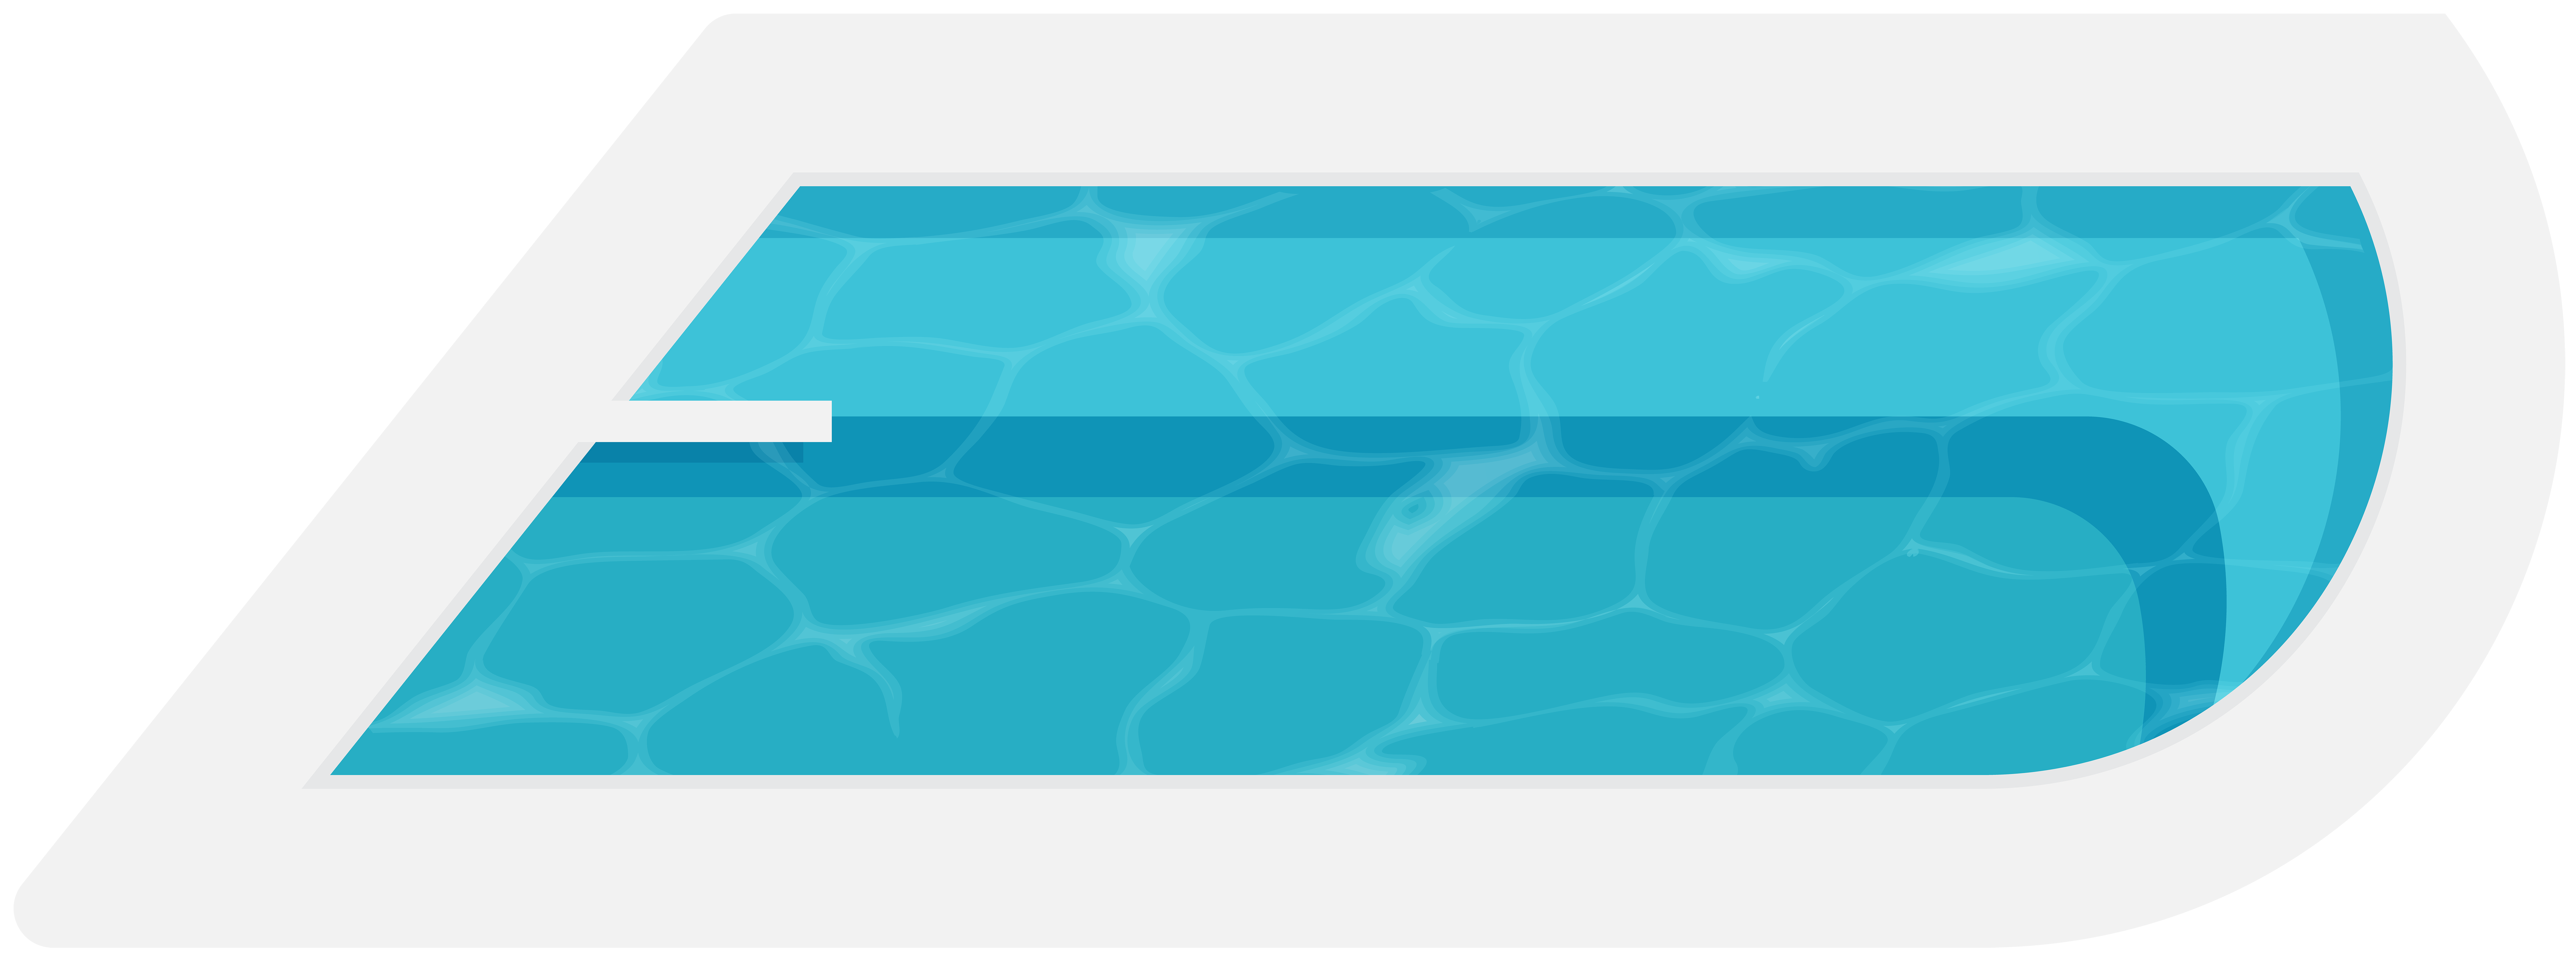 8000x2995 Drawing Pool Competitive Swimming Frames Illustrations Hd